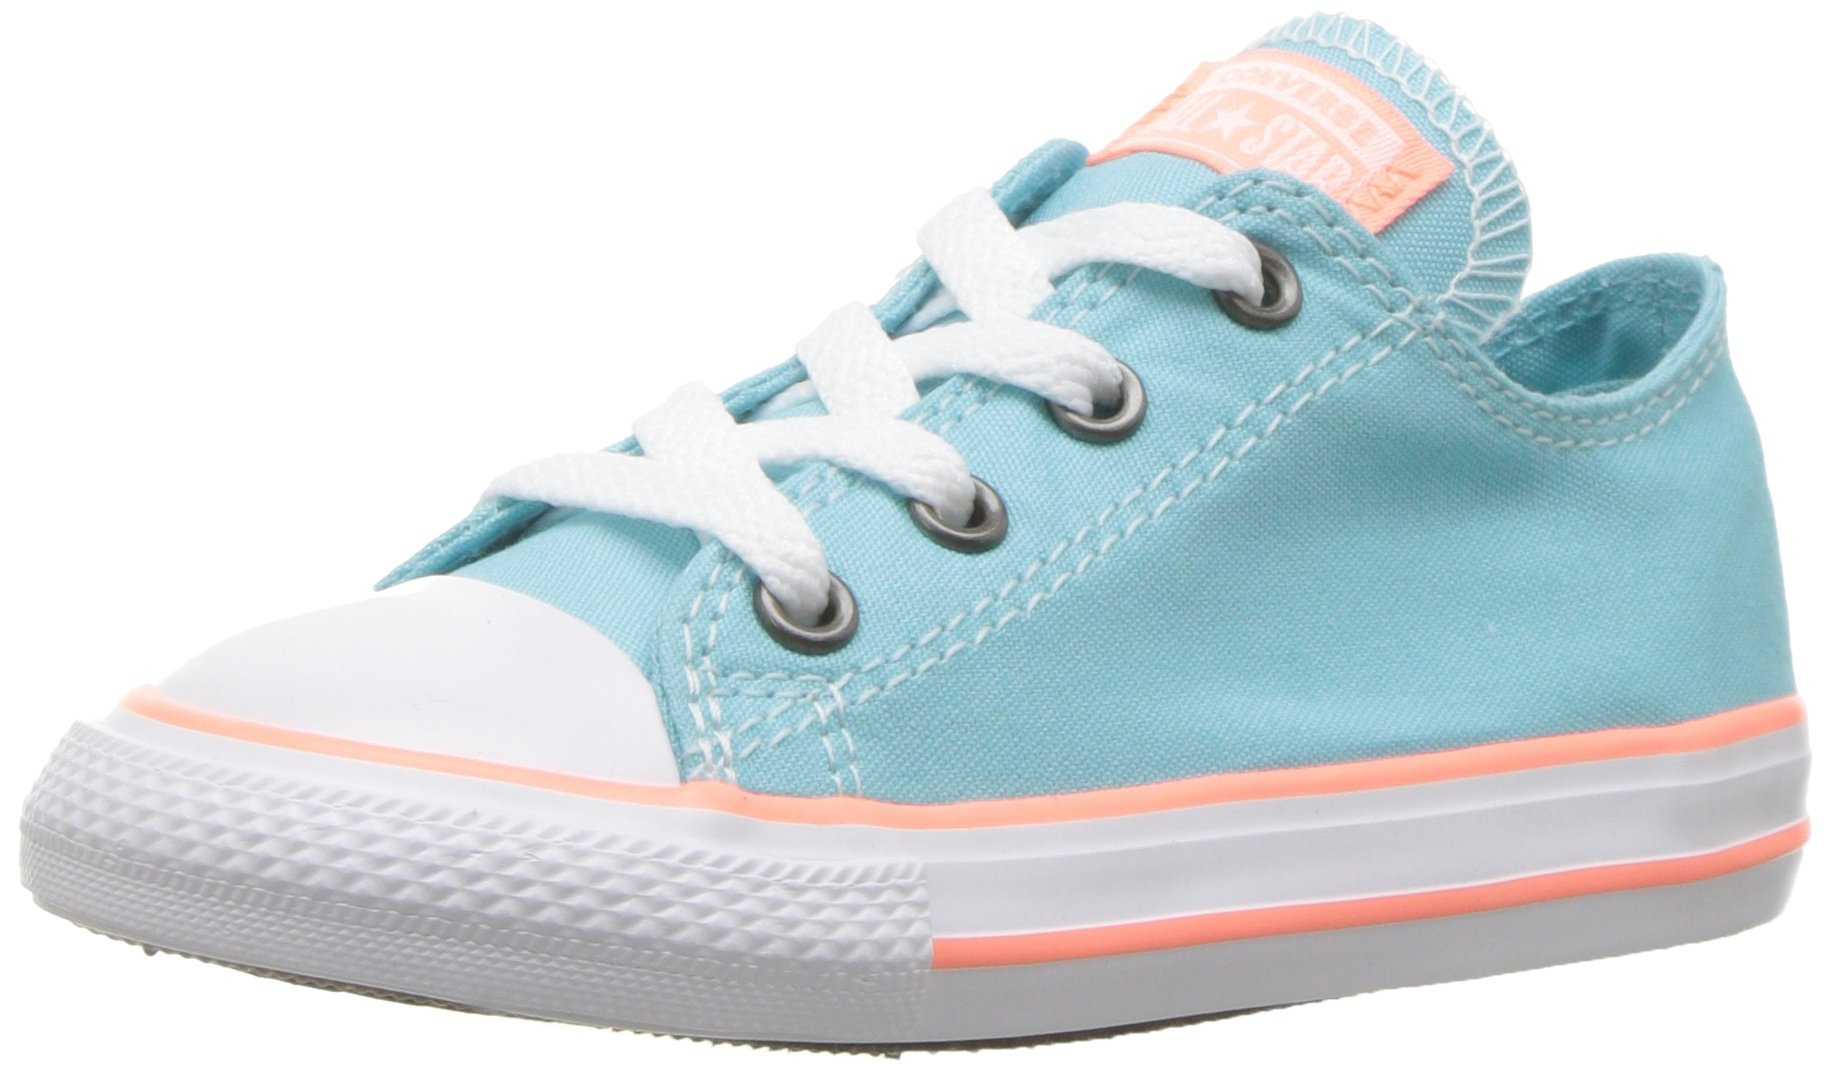 3247c7e59b27ca Galleon - Converse Kids  Chuck Taylor All Star Seasonal Canvas Low Top  Sneaker